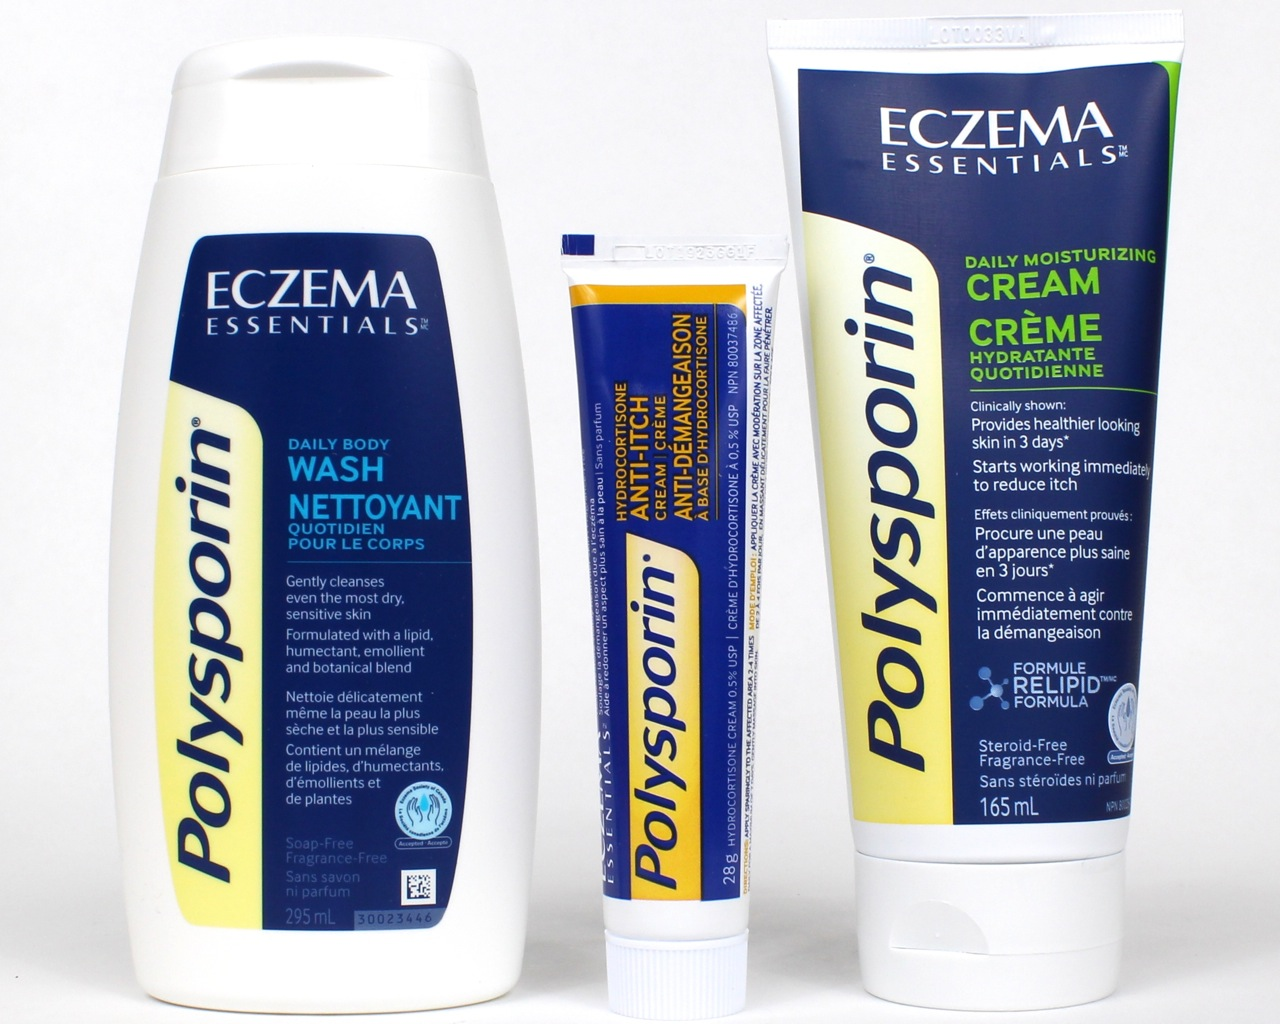 Polysporin Eczema and Me Contest — Deals from SaveaLoonie!